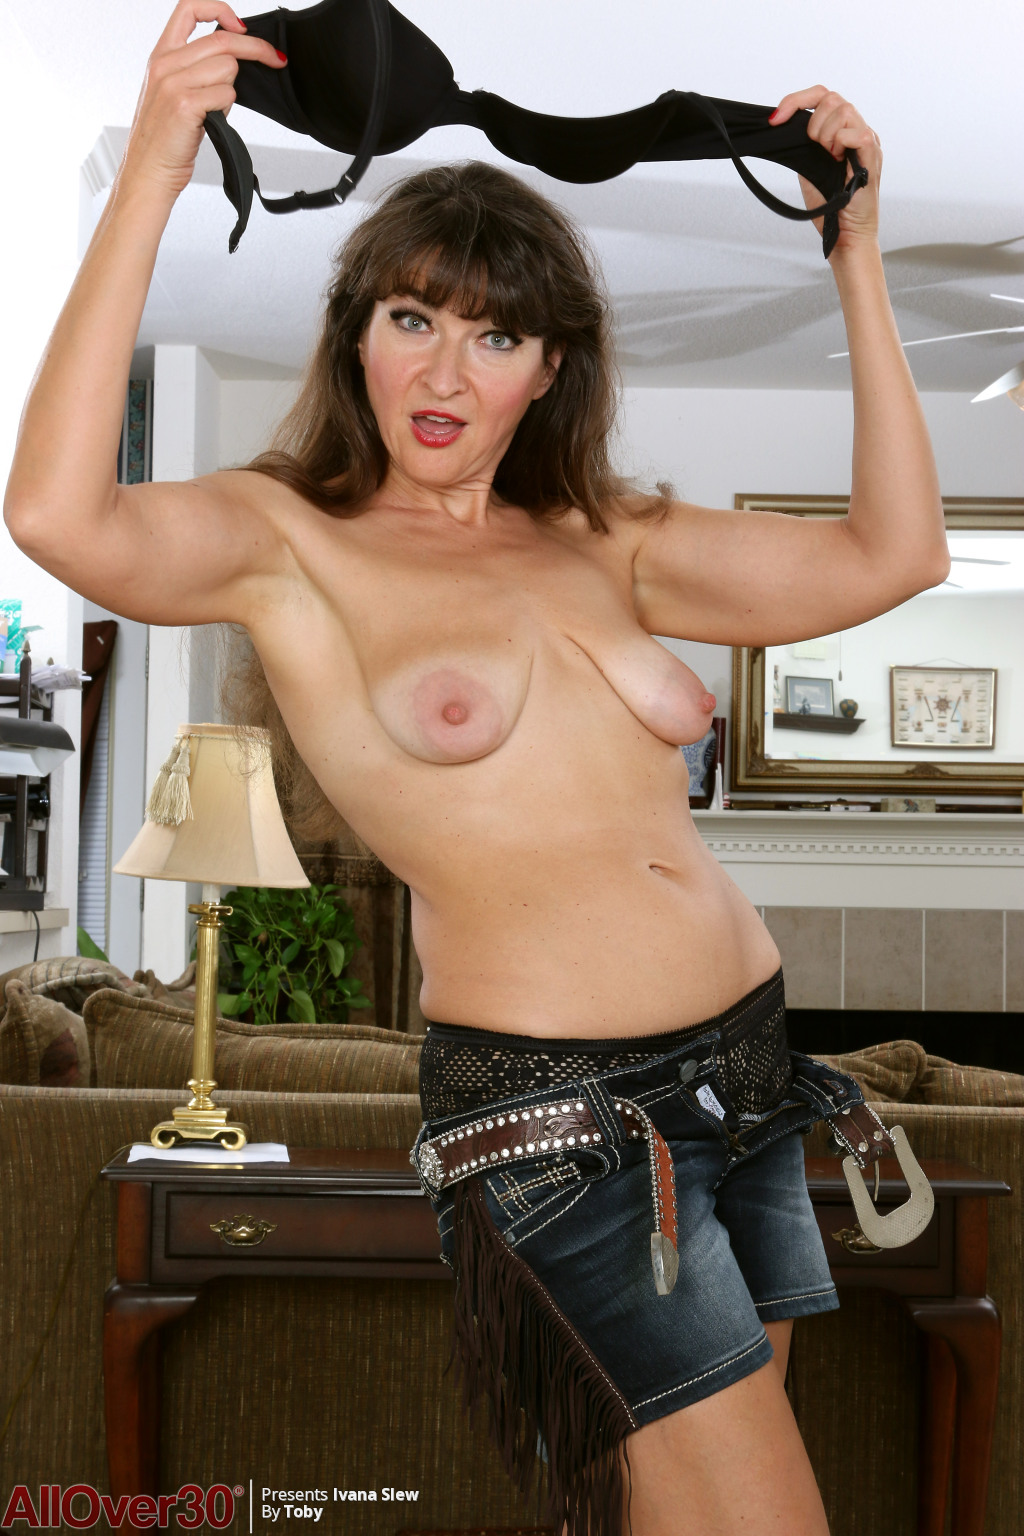 horny-cowgirl-ivana-slew-lets-us-see-her-saggy-breasts-and-hot-shaved-pussy8.jpg